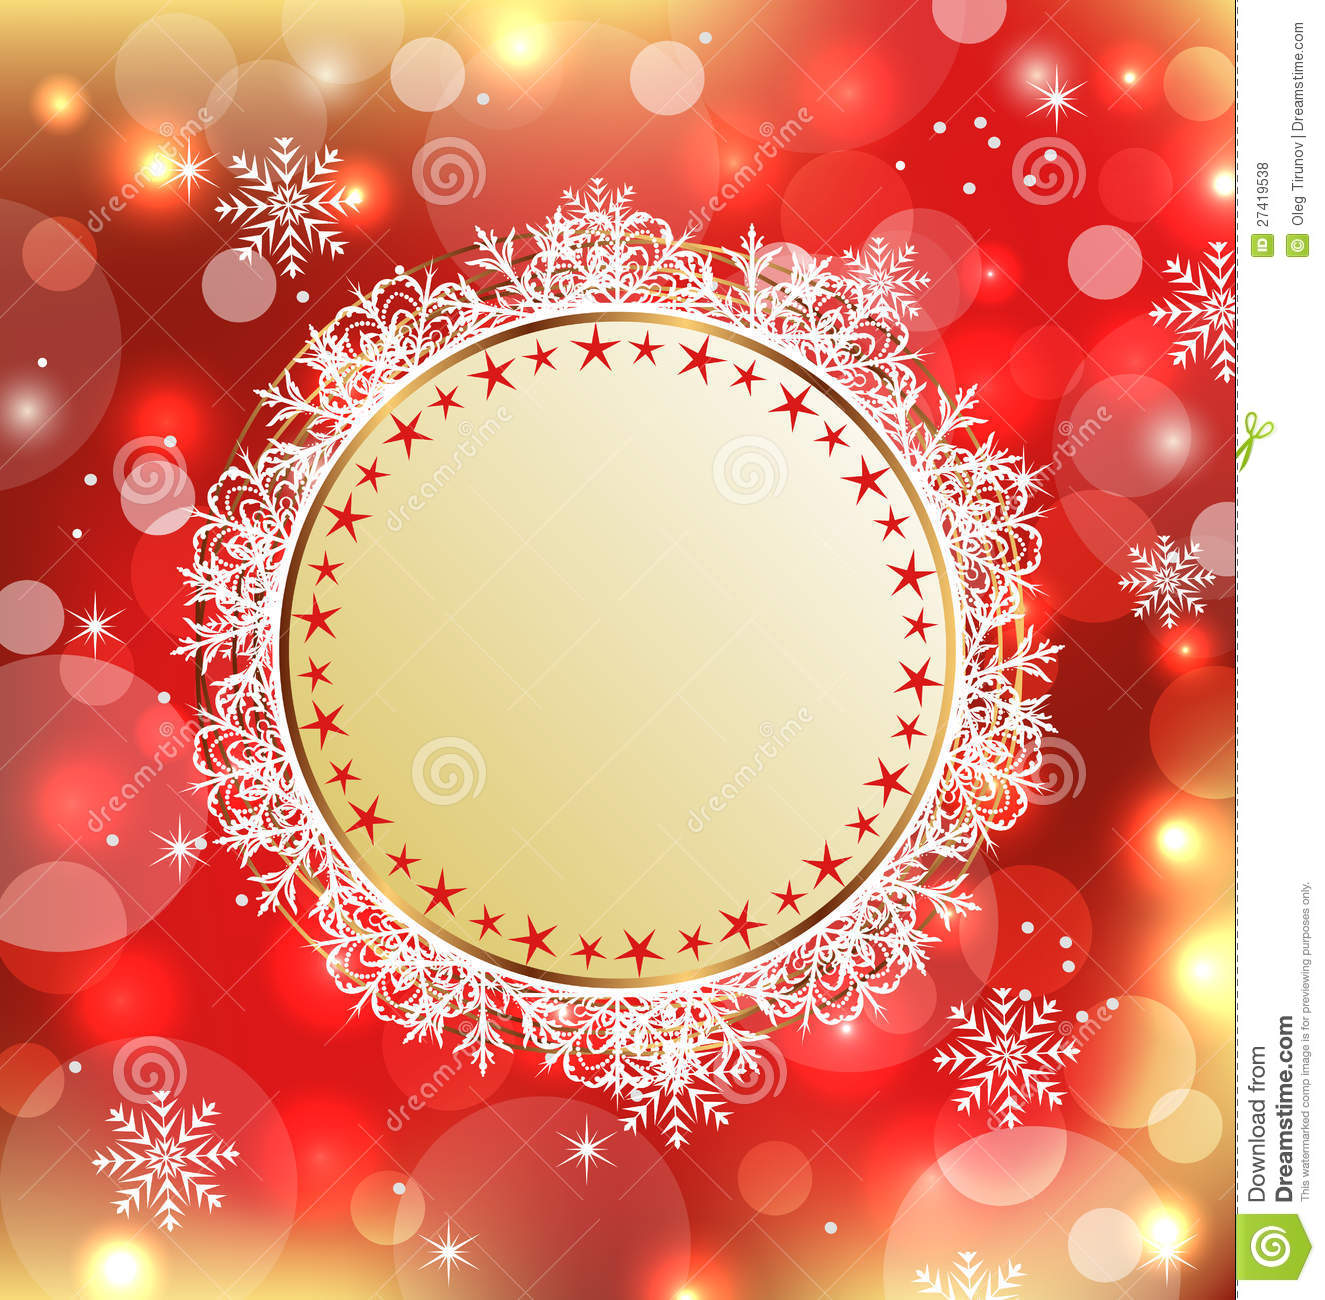 Christmas card background images all ideas about christmas and christmas holiday background with greeting card royalty free stock photos i kristyandbryce Choice Image